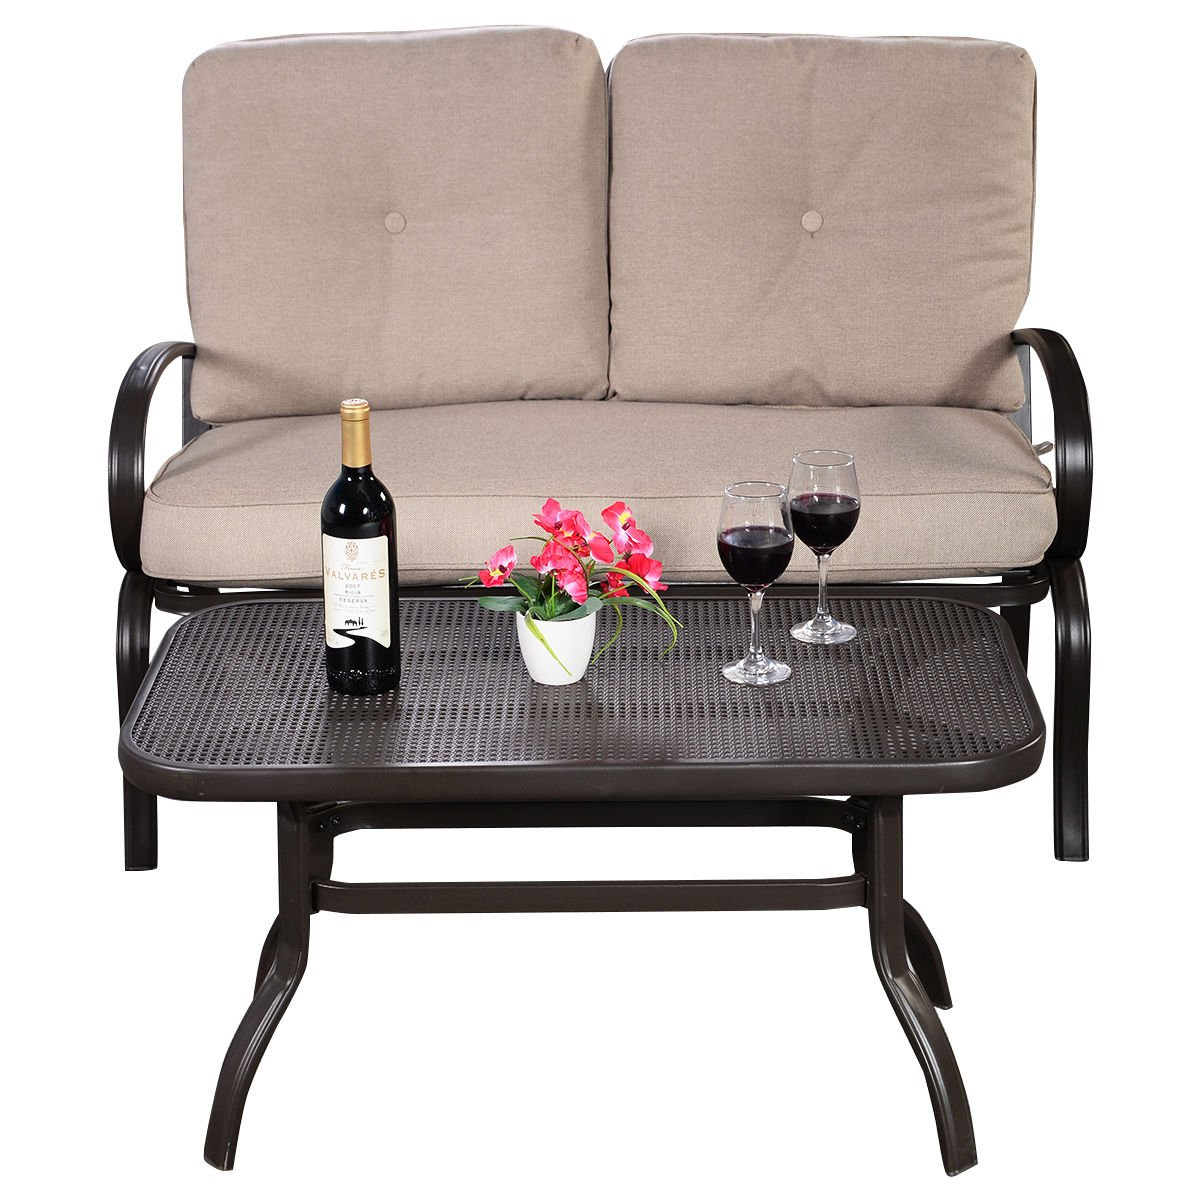 Giantex 2 Pcs Patio Outdoor LoveSeat Coffee Table Set Furniture Bench With Cushion by Giantex (Image #2)